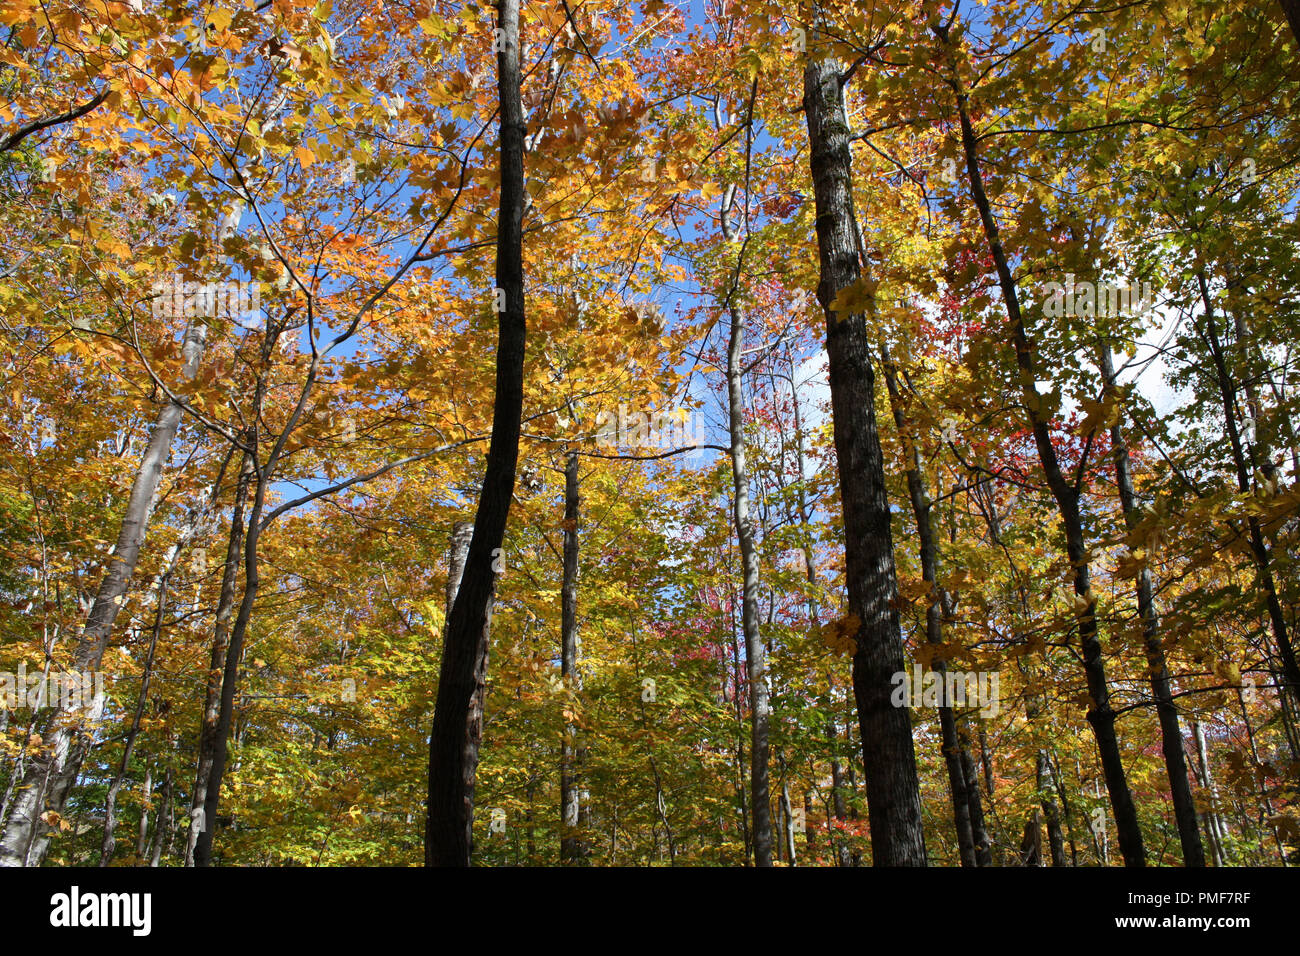 Upward shot of forest canopy landscape of fall colors in the forest at Crawford Notch State Park in New Hampshire, USA Stock Photo